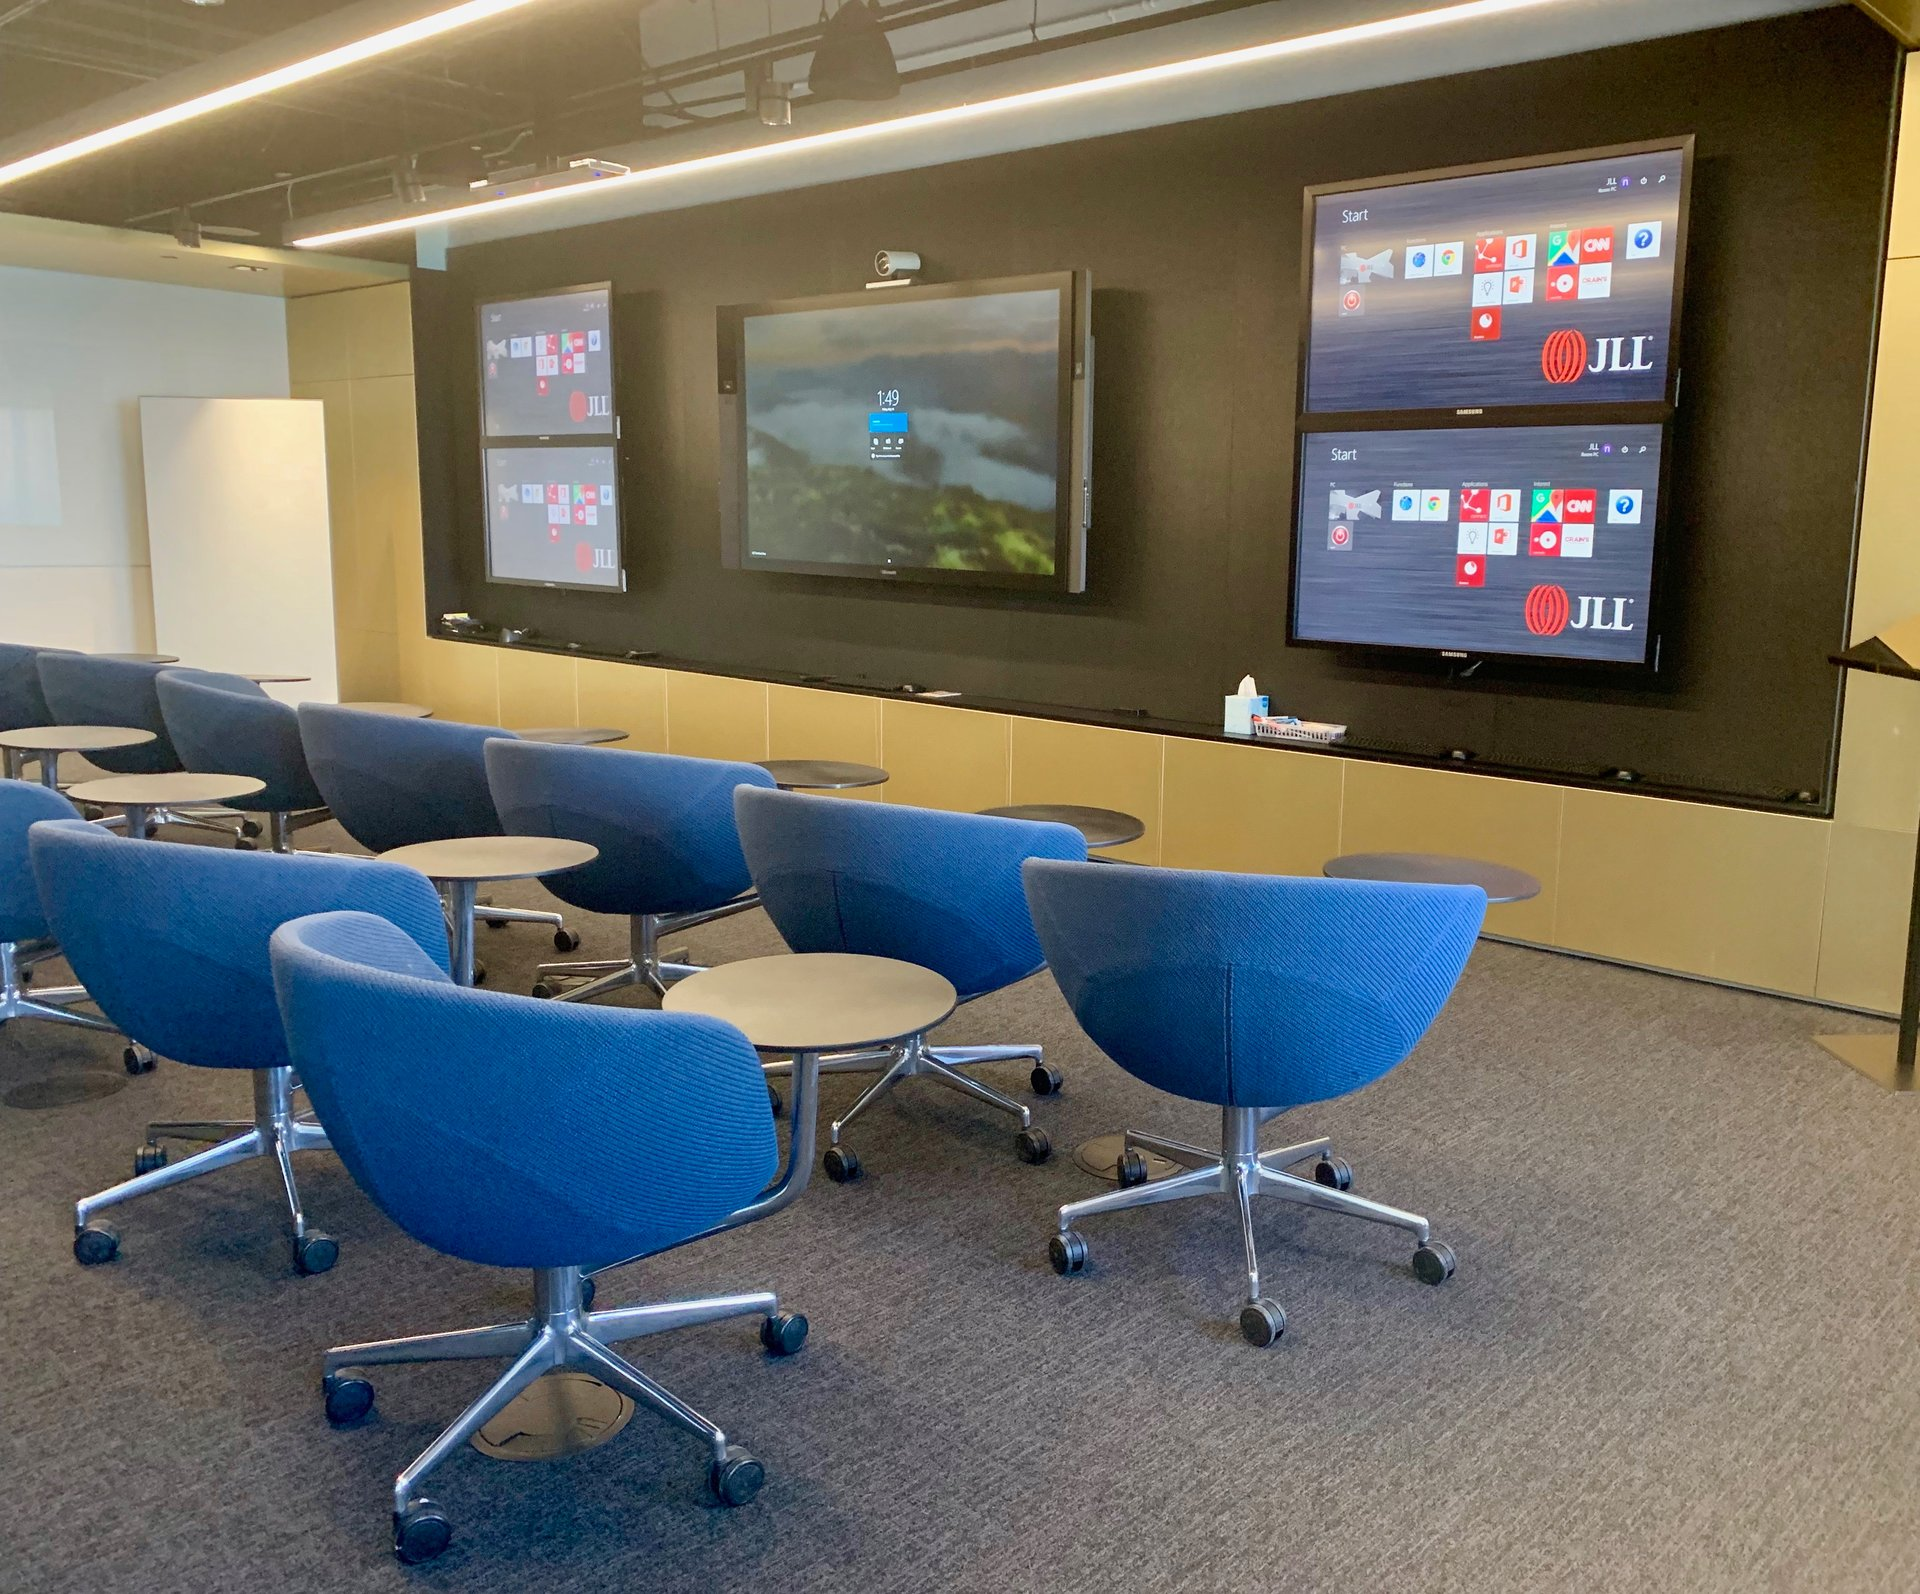 Workplace design that centers around technology makes the new generation of workers feel right at home. (Image credit: JLL).